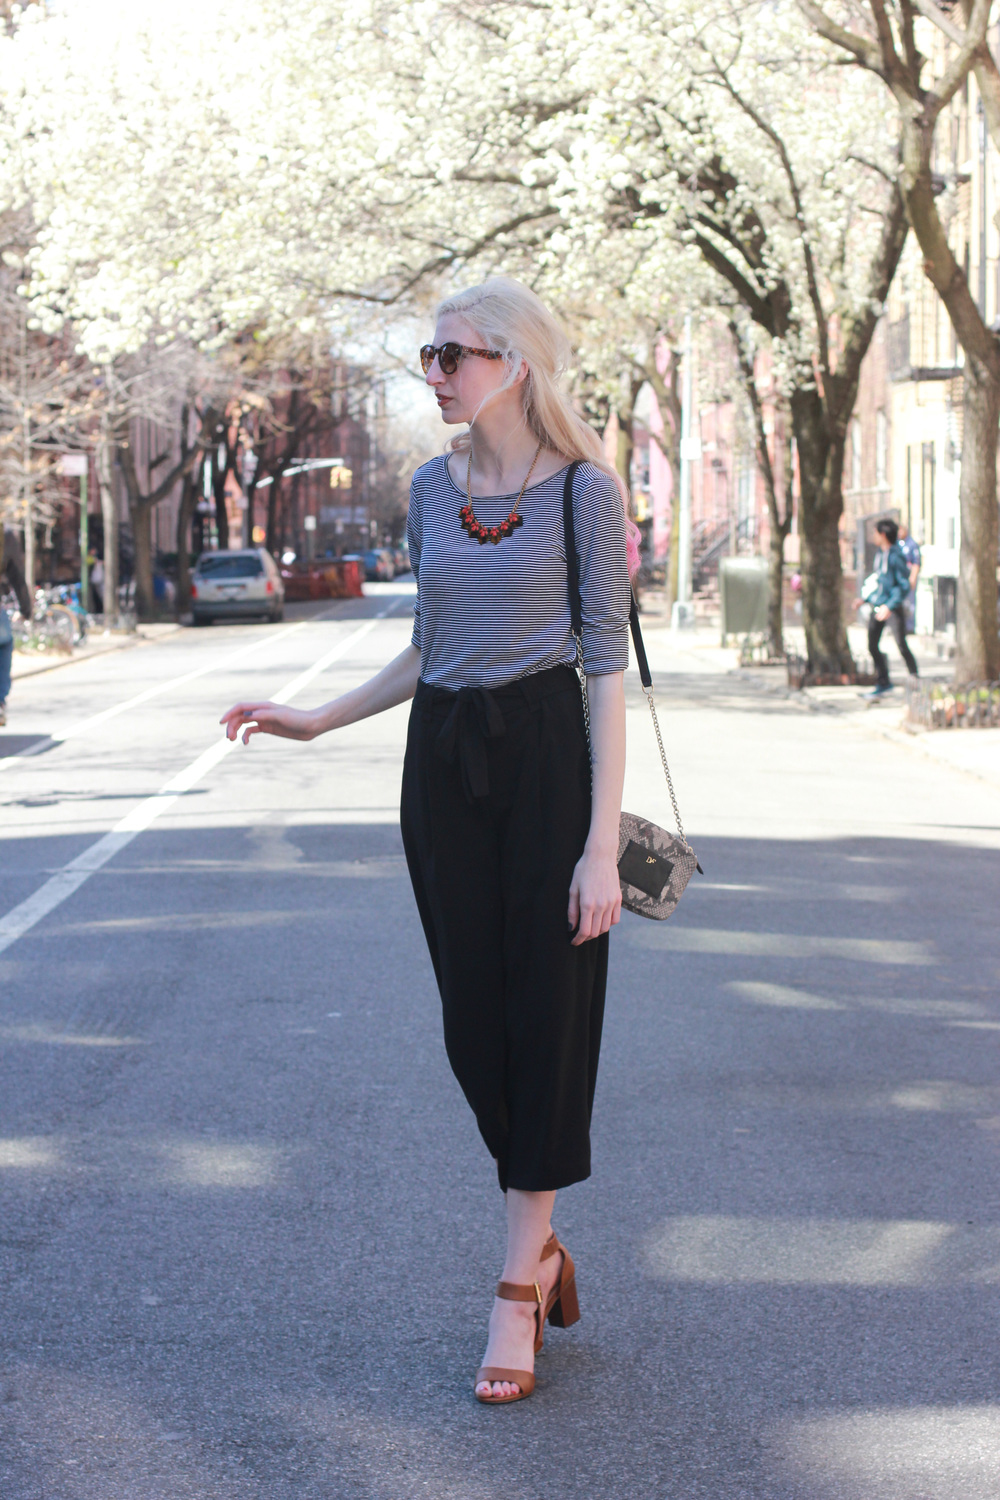 LOFT striped longsleeve top, Zara black high waisted culottes, Target brown black heel sandals, J.Crew tortoiseshell statement necklace, DVF micro milo crossbody bag